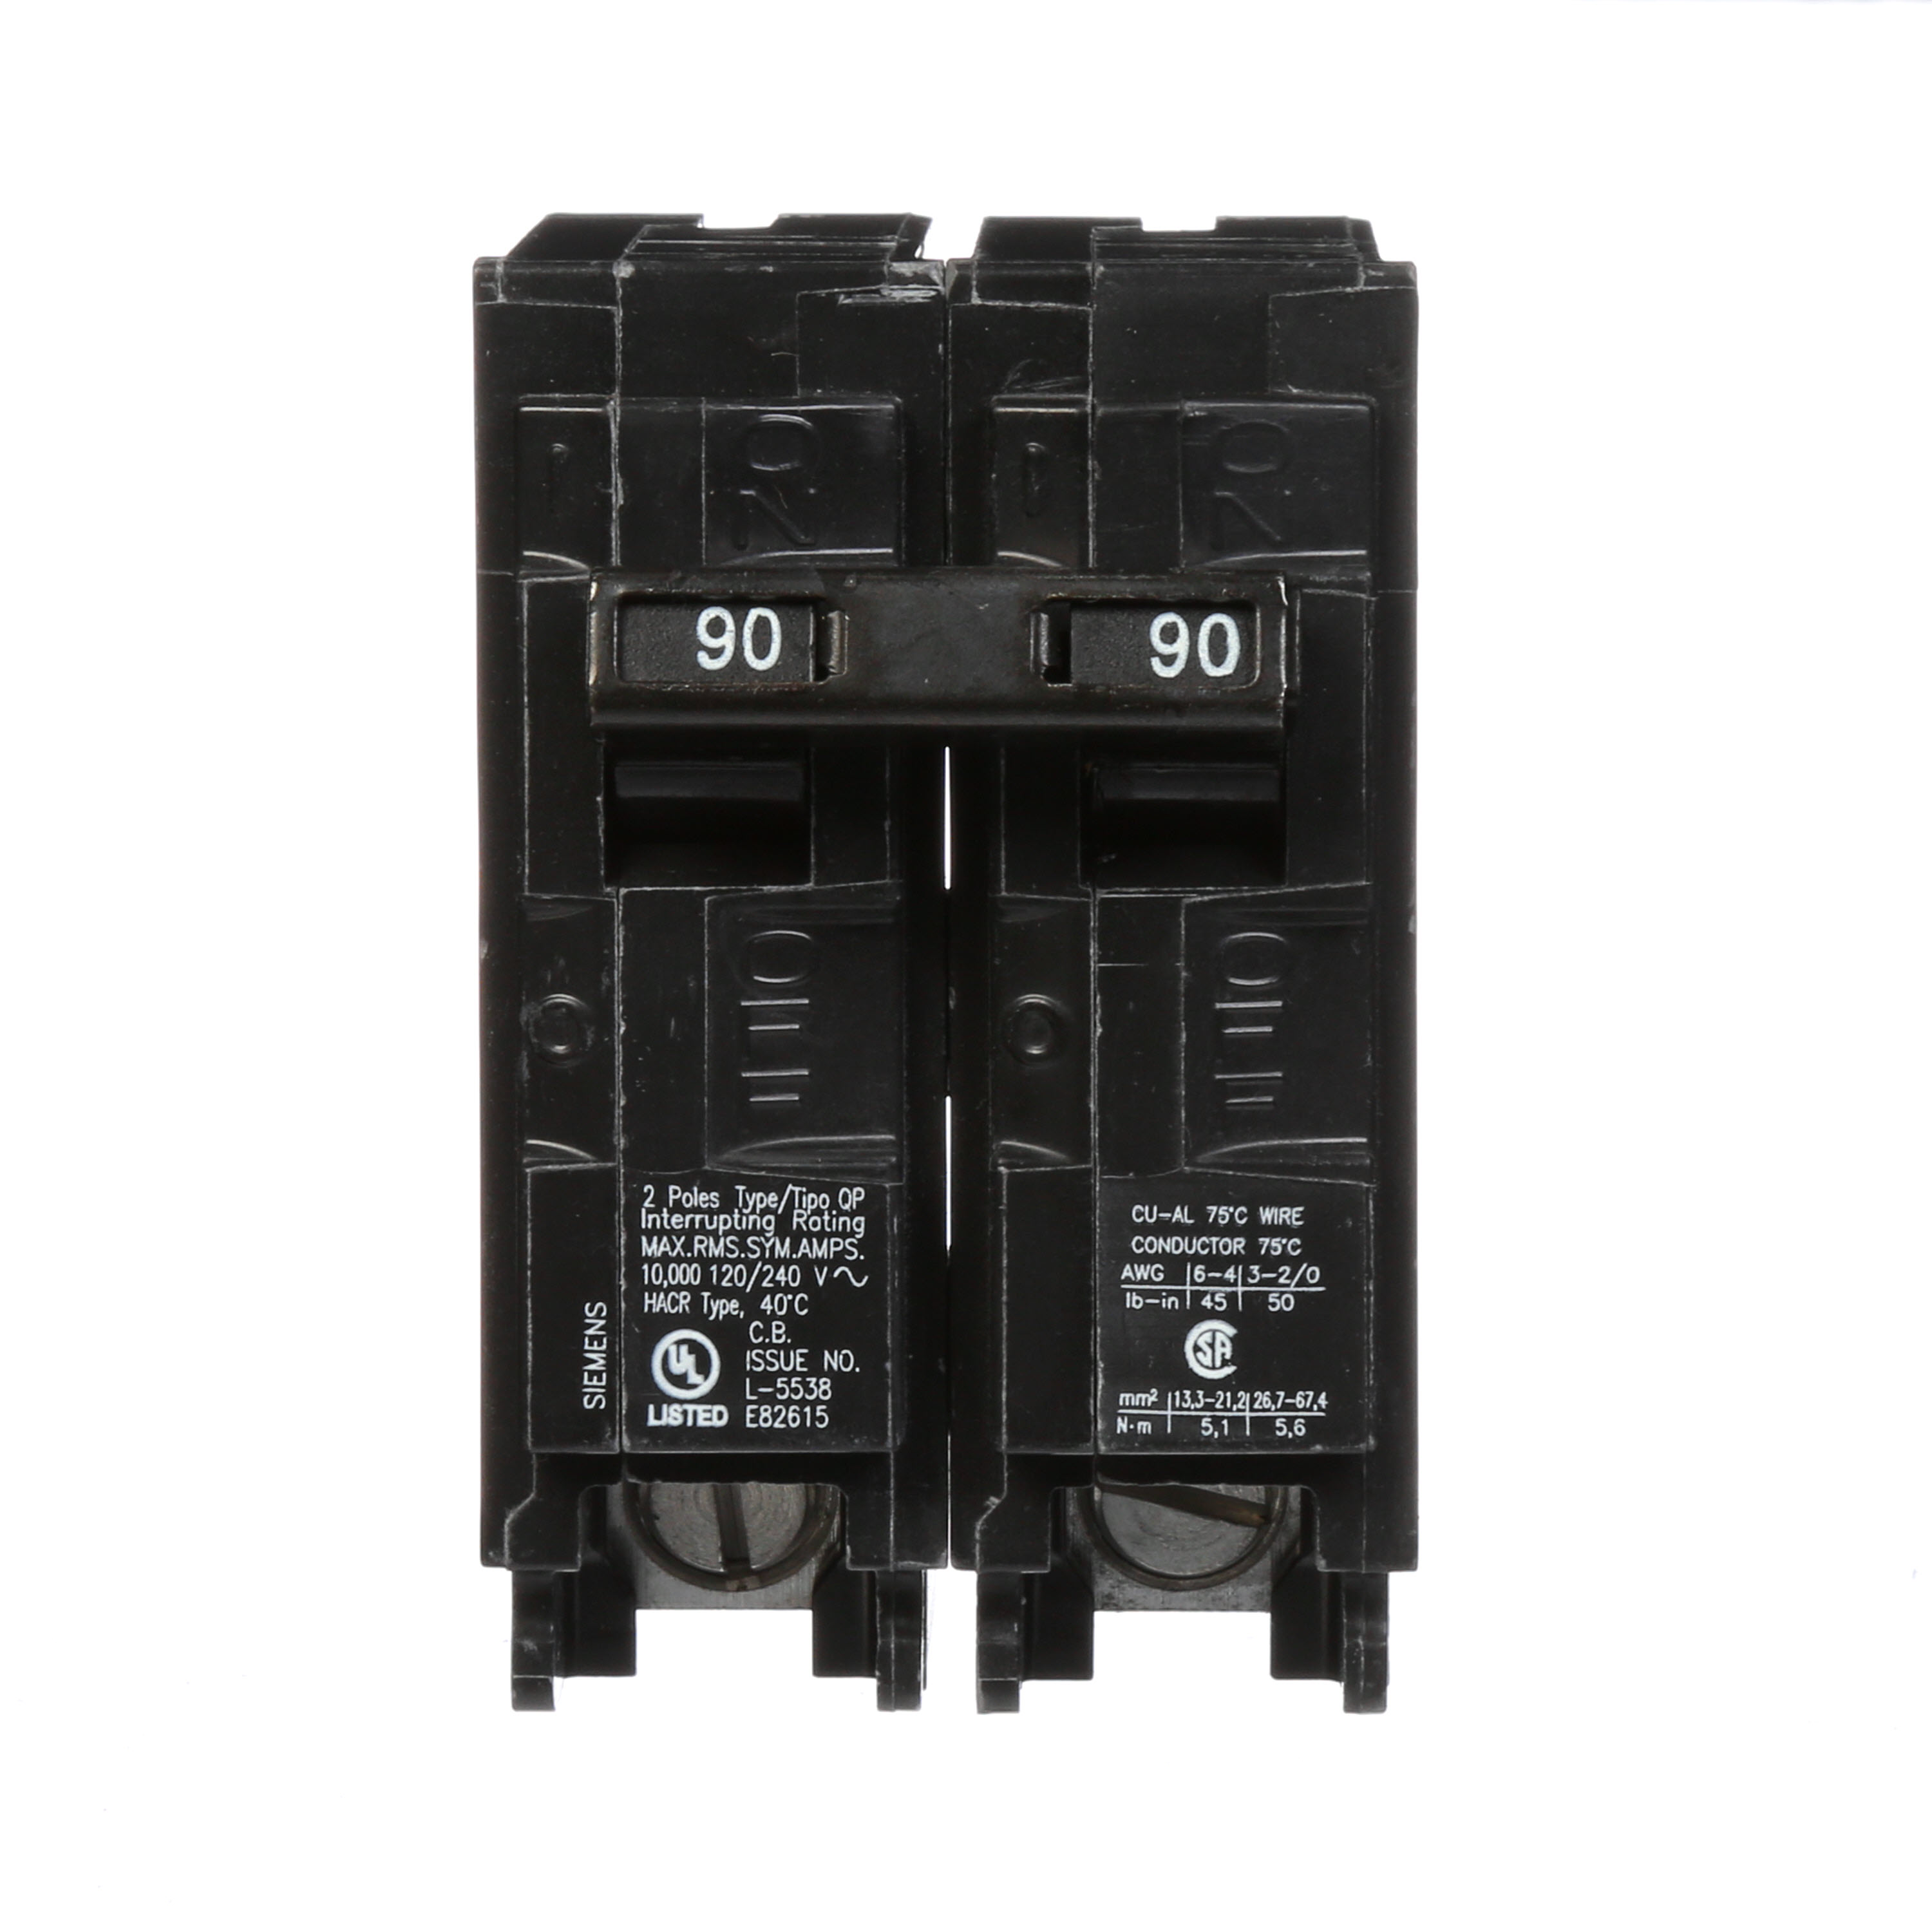 Siemens Q290 Molded Case Breakers - Crescent Electric Supply Company